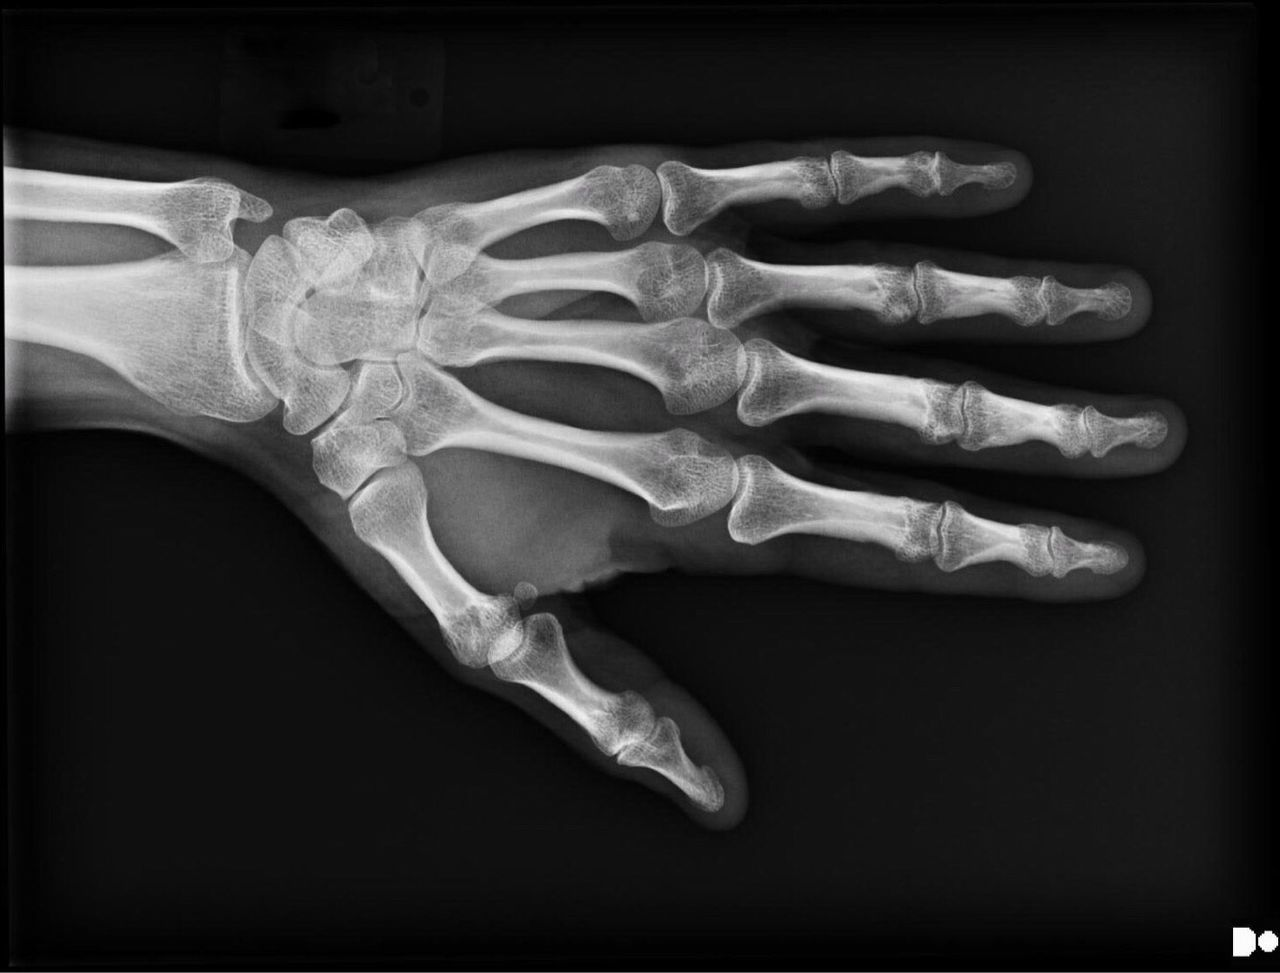 So what you can't see in this image is a sprain of my radial collateral ligament after whacking it with hammer. I inadvertently mistook my hand for a chisel. Those armchair radiologists out there will notice the beginnings of arthritis in some of my fingers. Oy. Human Skeleton No People Bone  Close-up Healthcare And Medicine Science Biology Indoors  Black Background